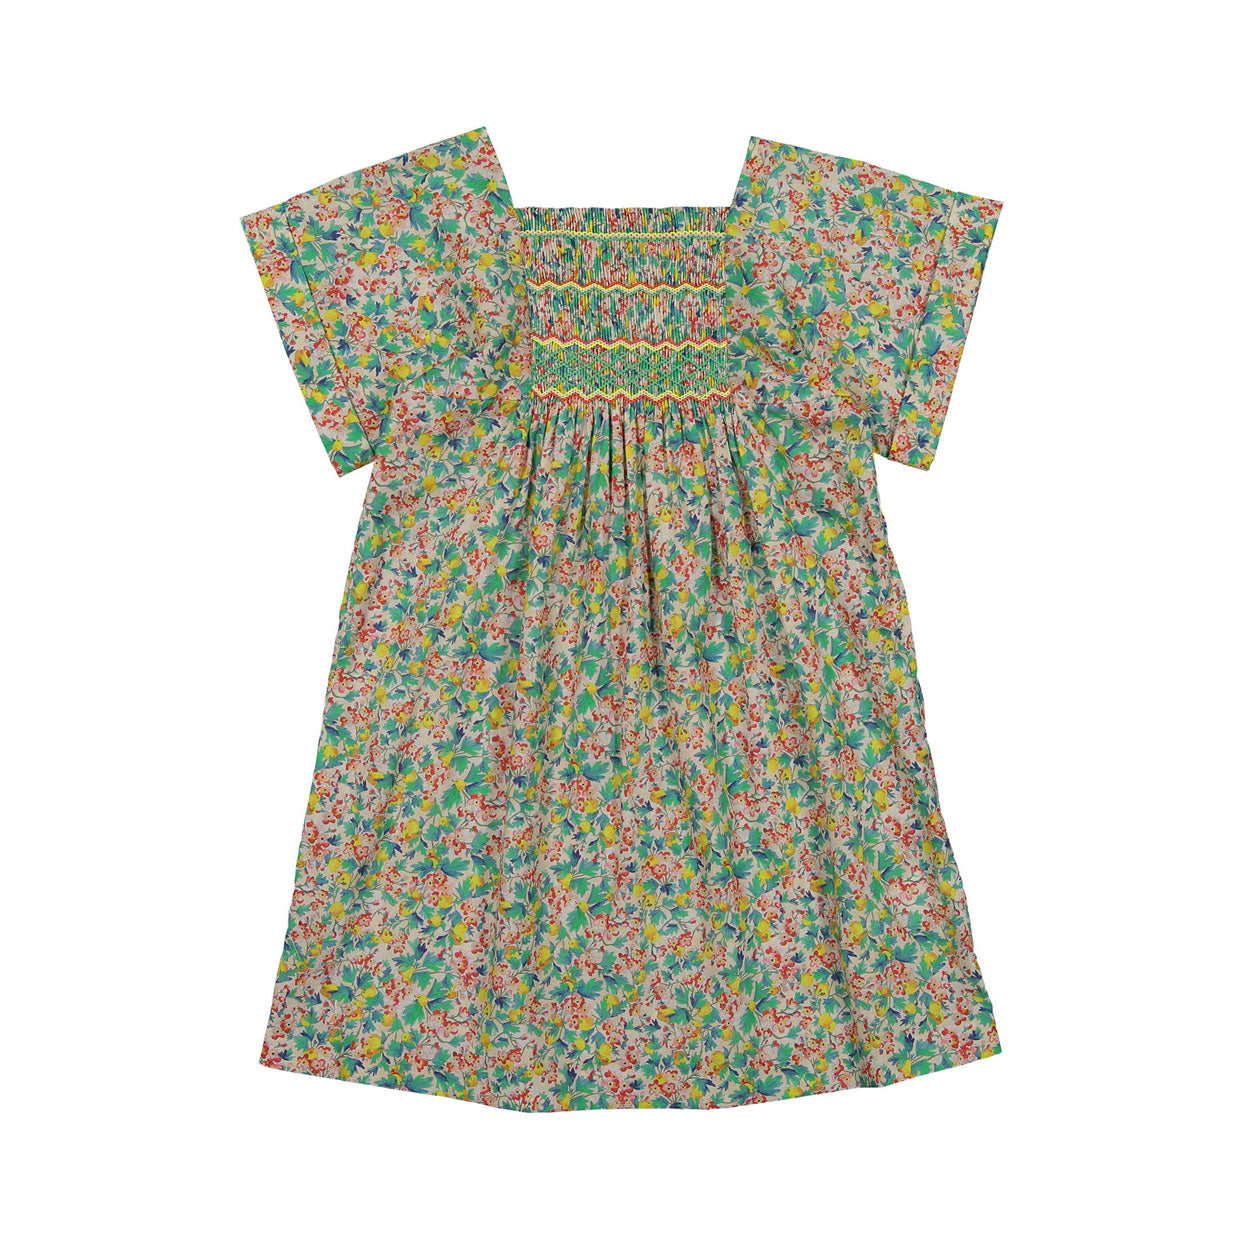 Bonpoint Lagoon Liberty Smocked Dress